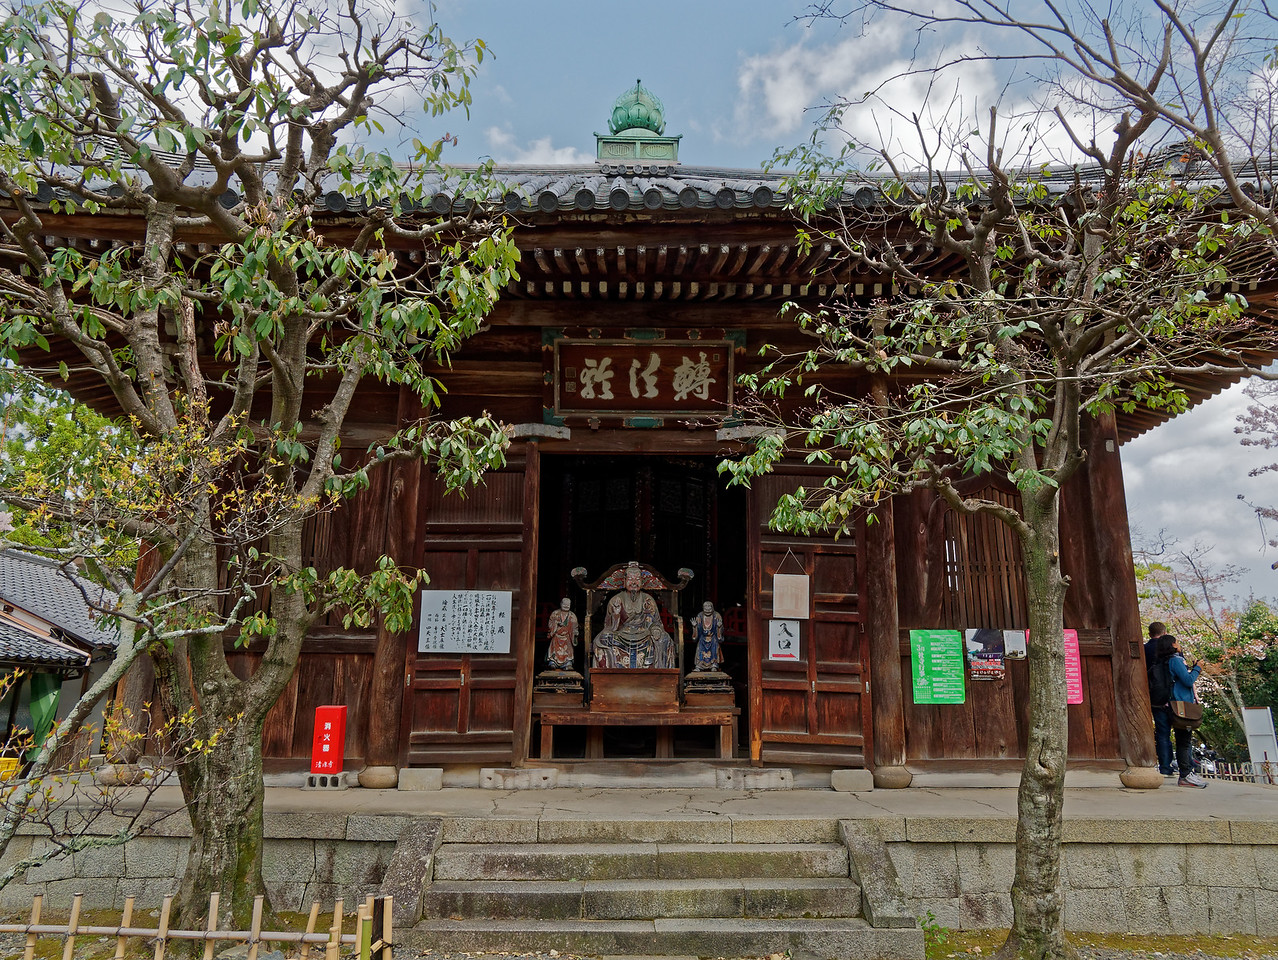 This building houses a revolving structure with storage shelves containing sutras, sacred books of Buddhism.